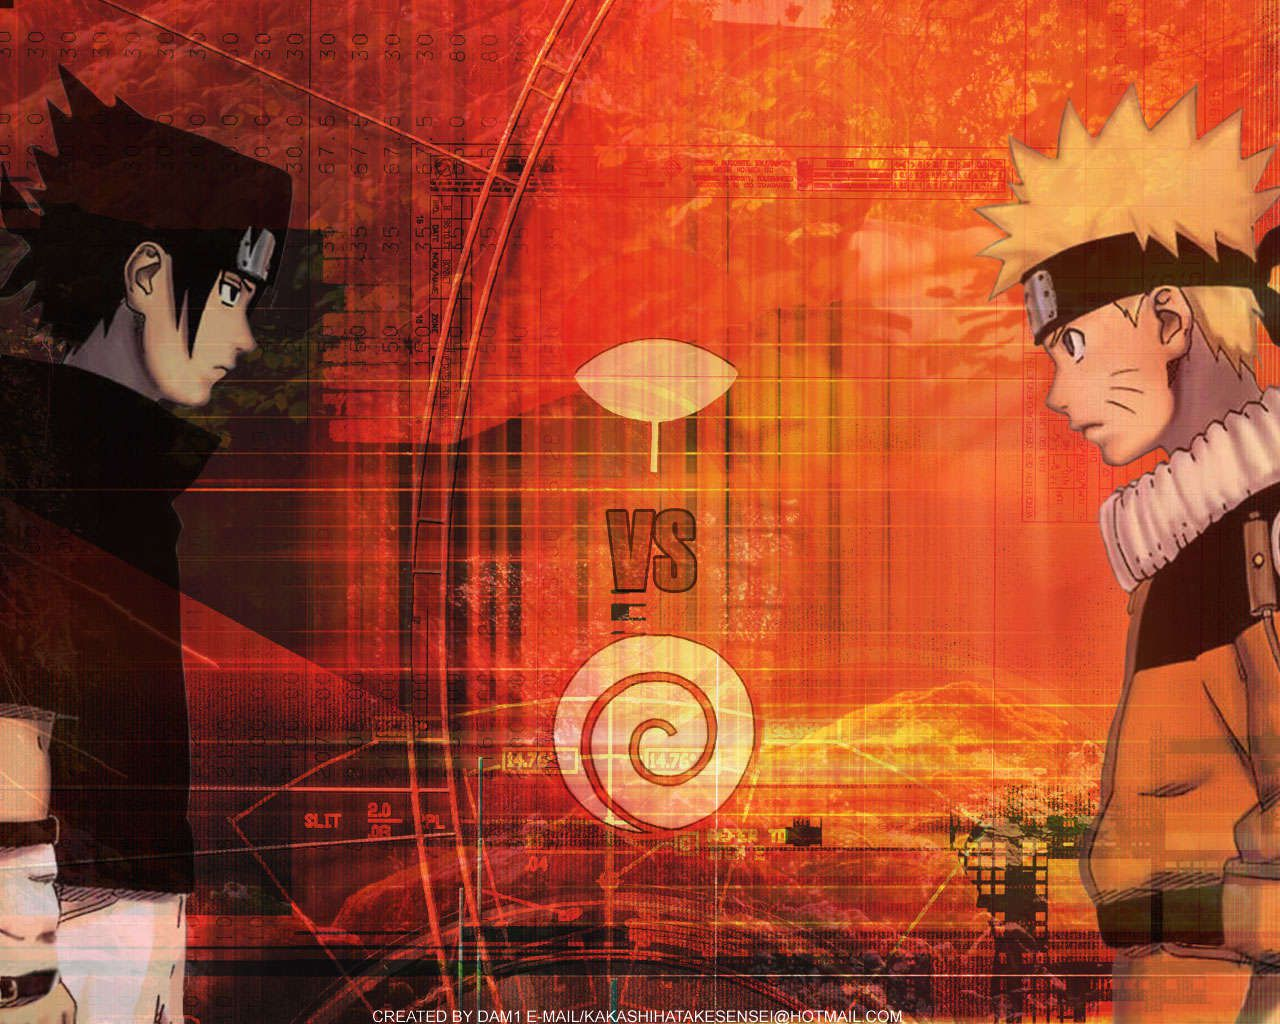 Naruto 118 ddl!!! Japan's spirit.